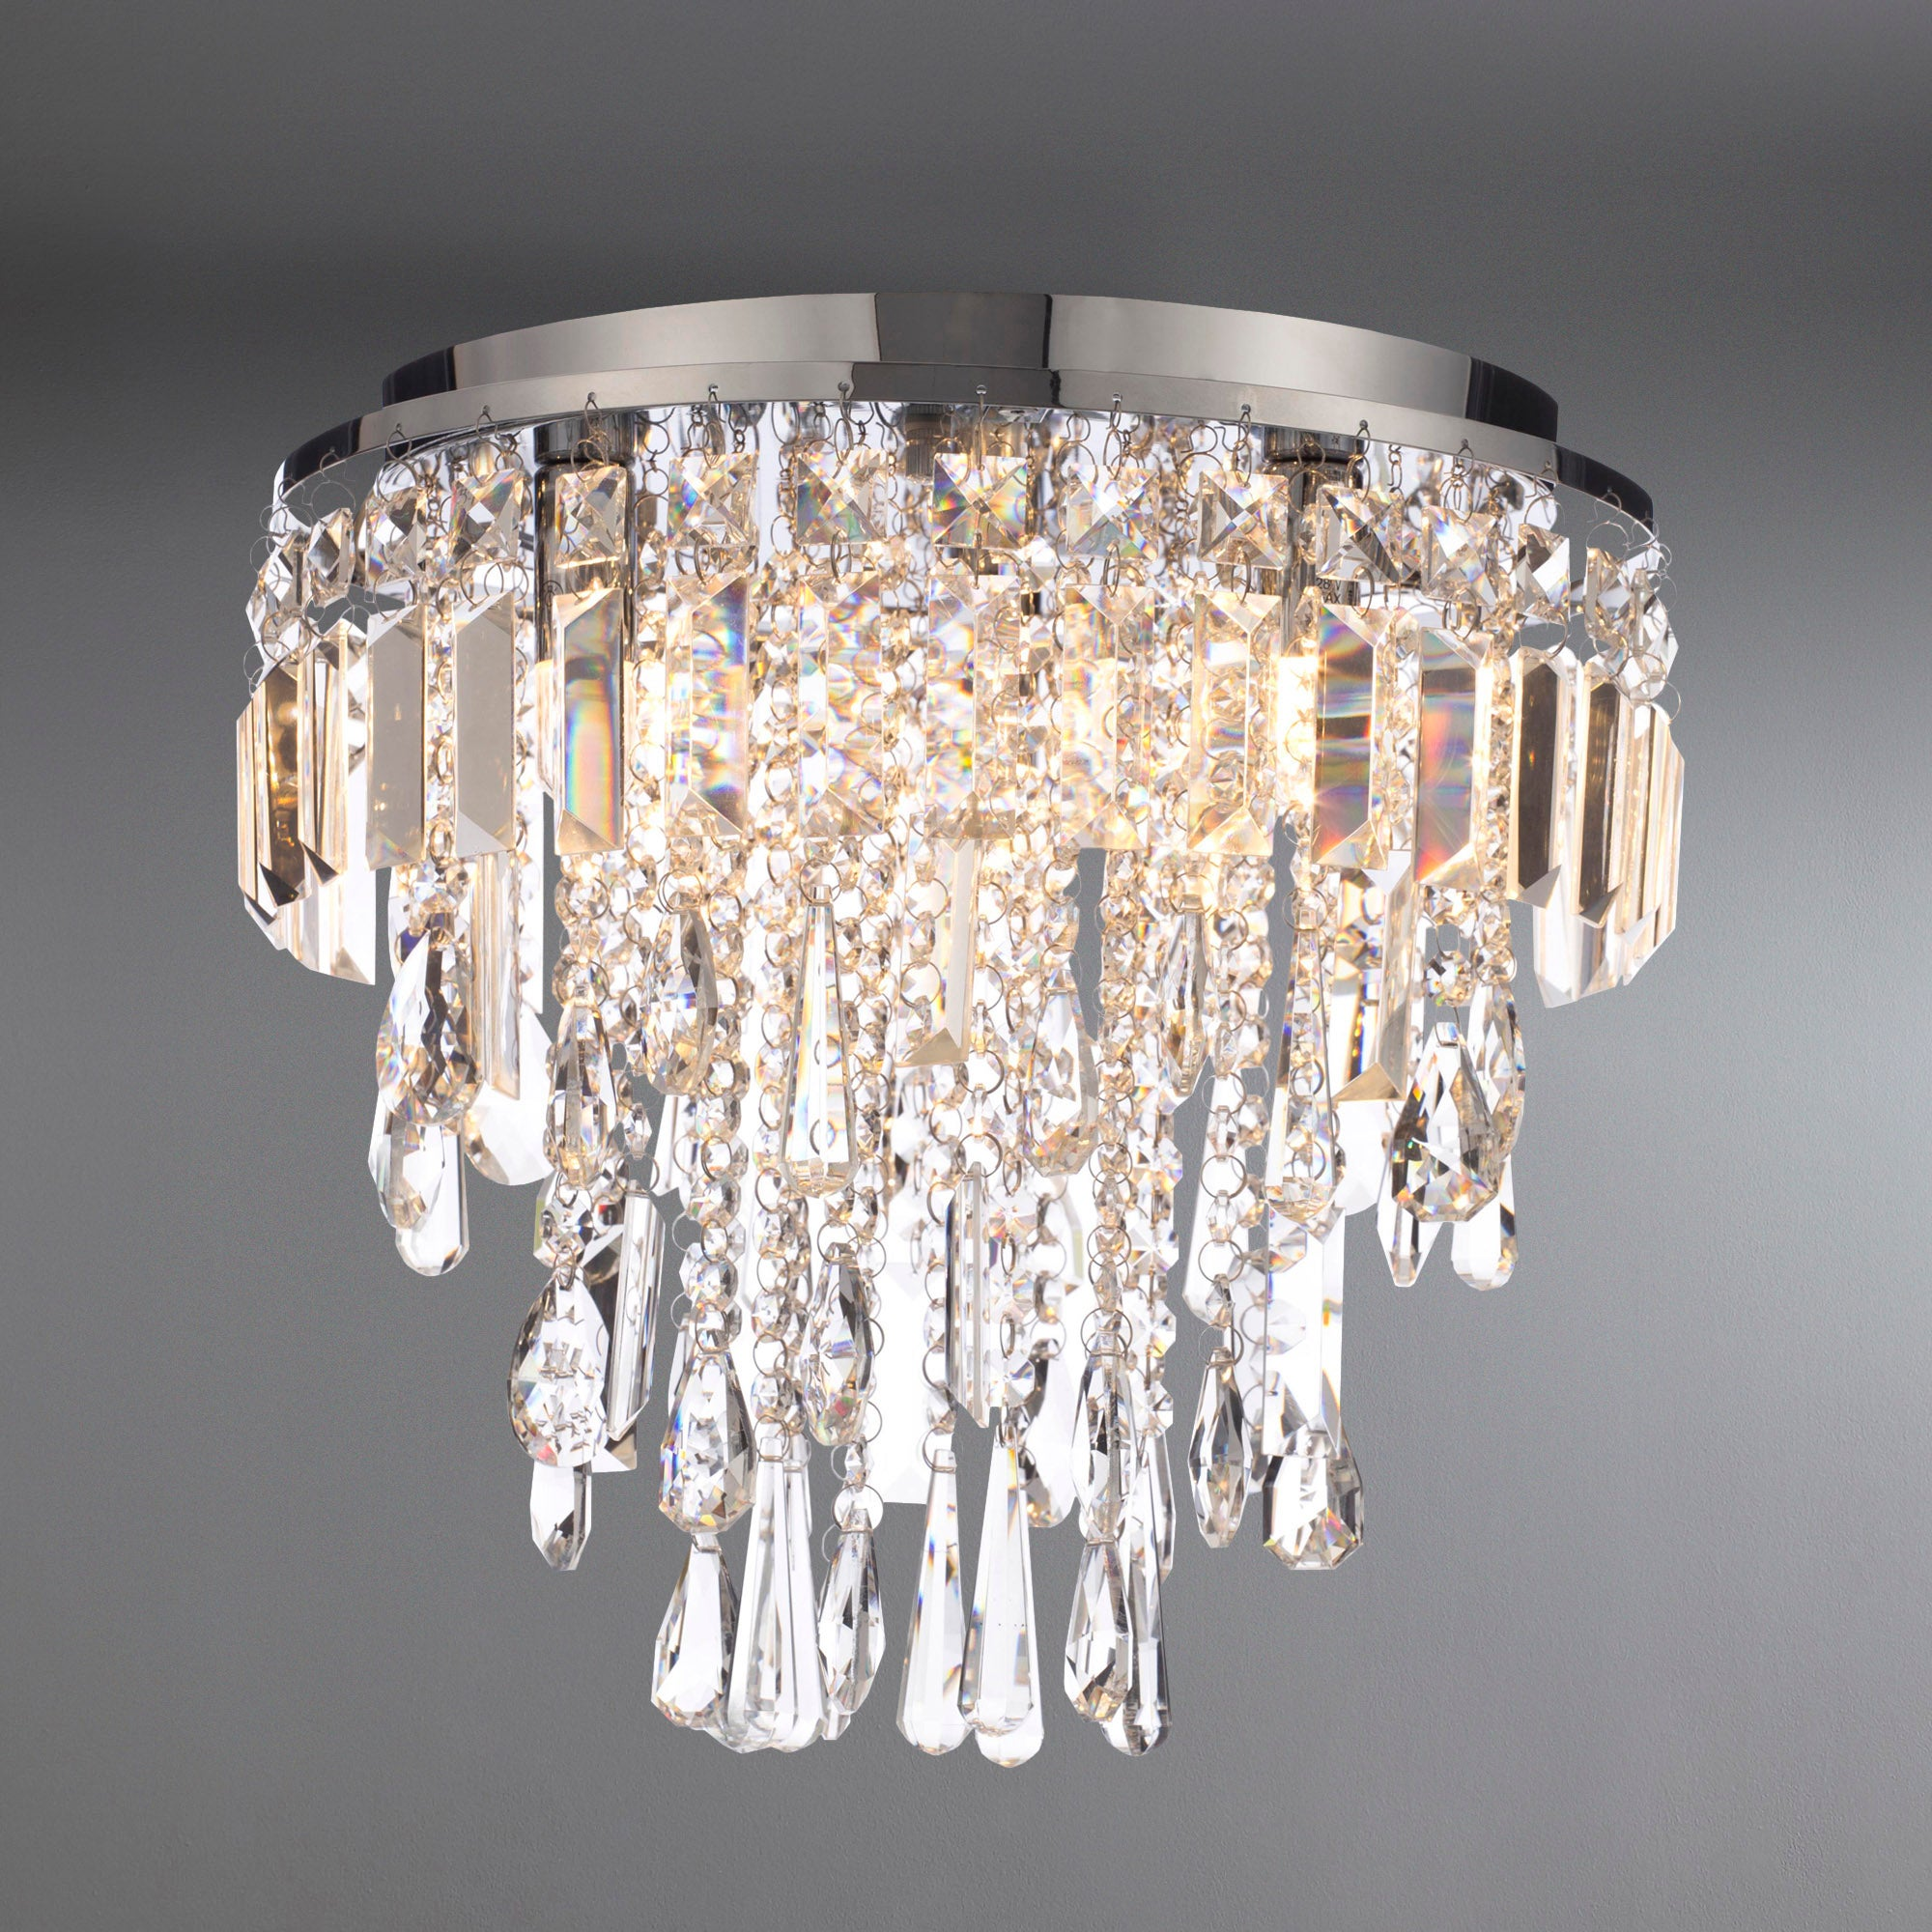 Image of Marquis by Waterford Bresna Chrome 3 Light Flush Ceiling Fitting Chrome